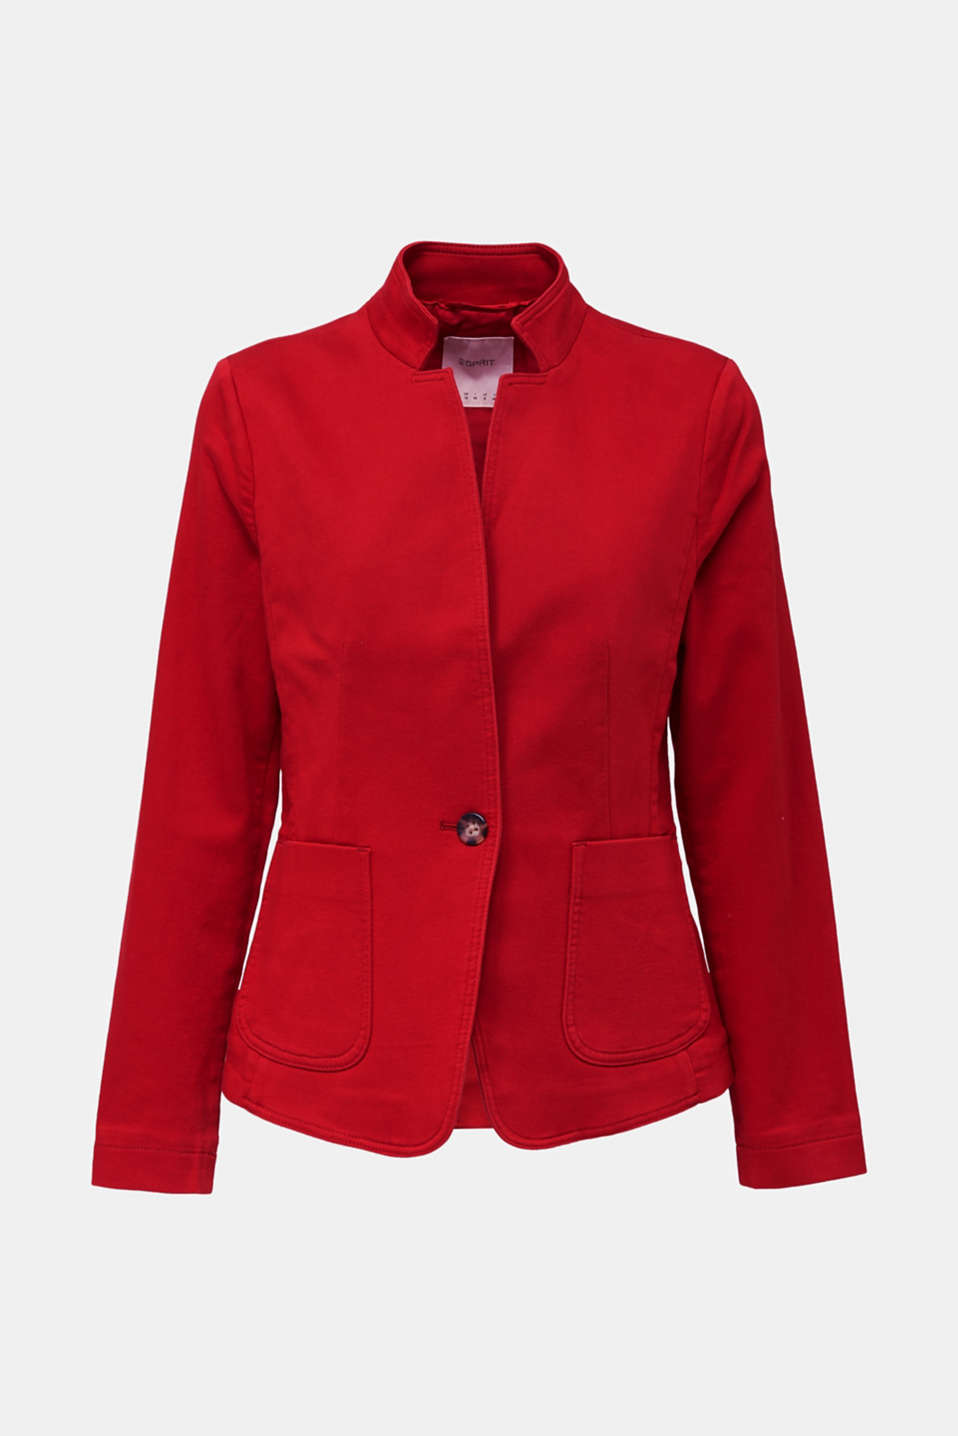 Blazer with an adjustable collar, stretch cotton, DARK RED, detail image number 7